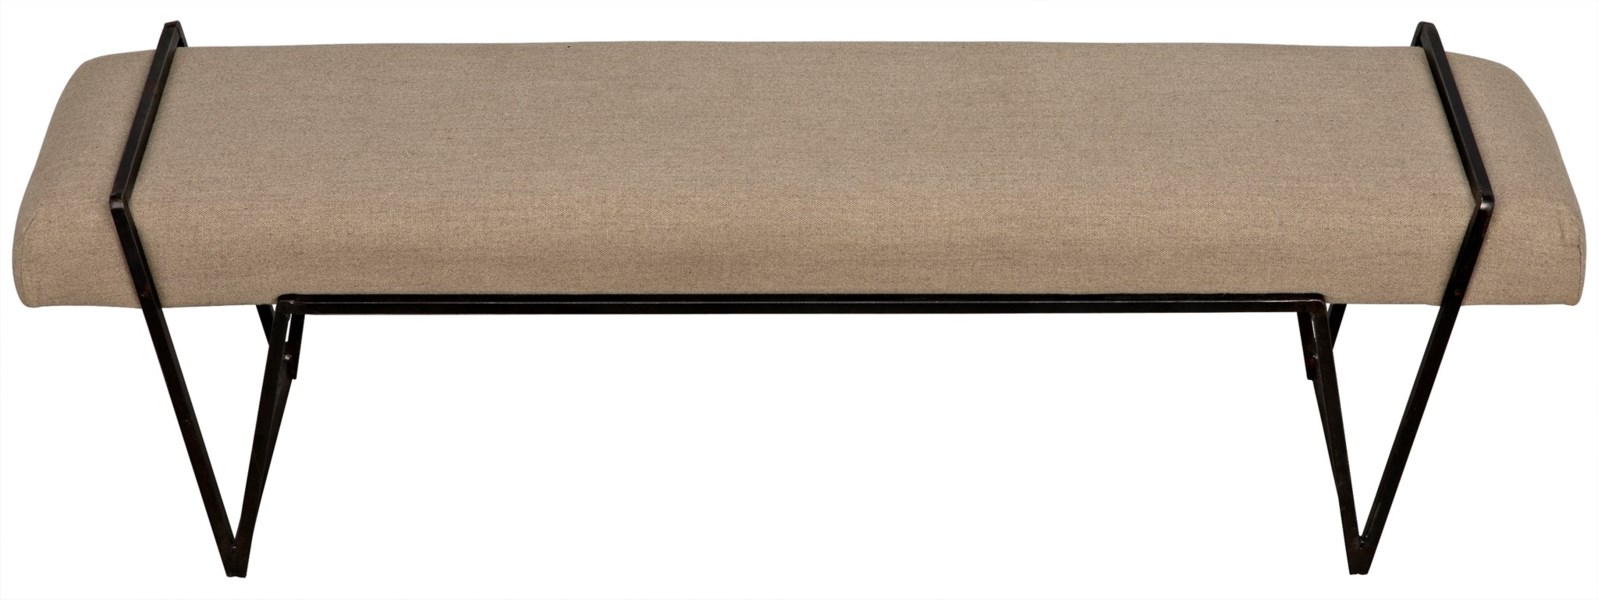 Larkin Bench, Metal w/Linen